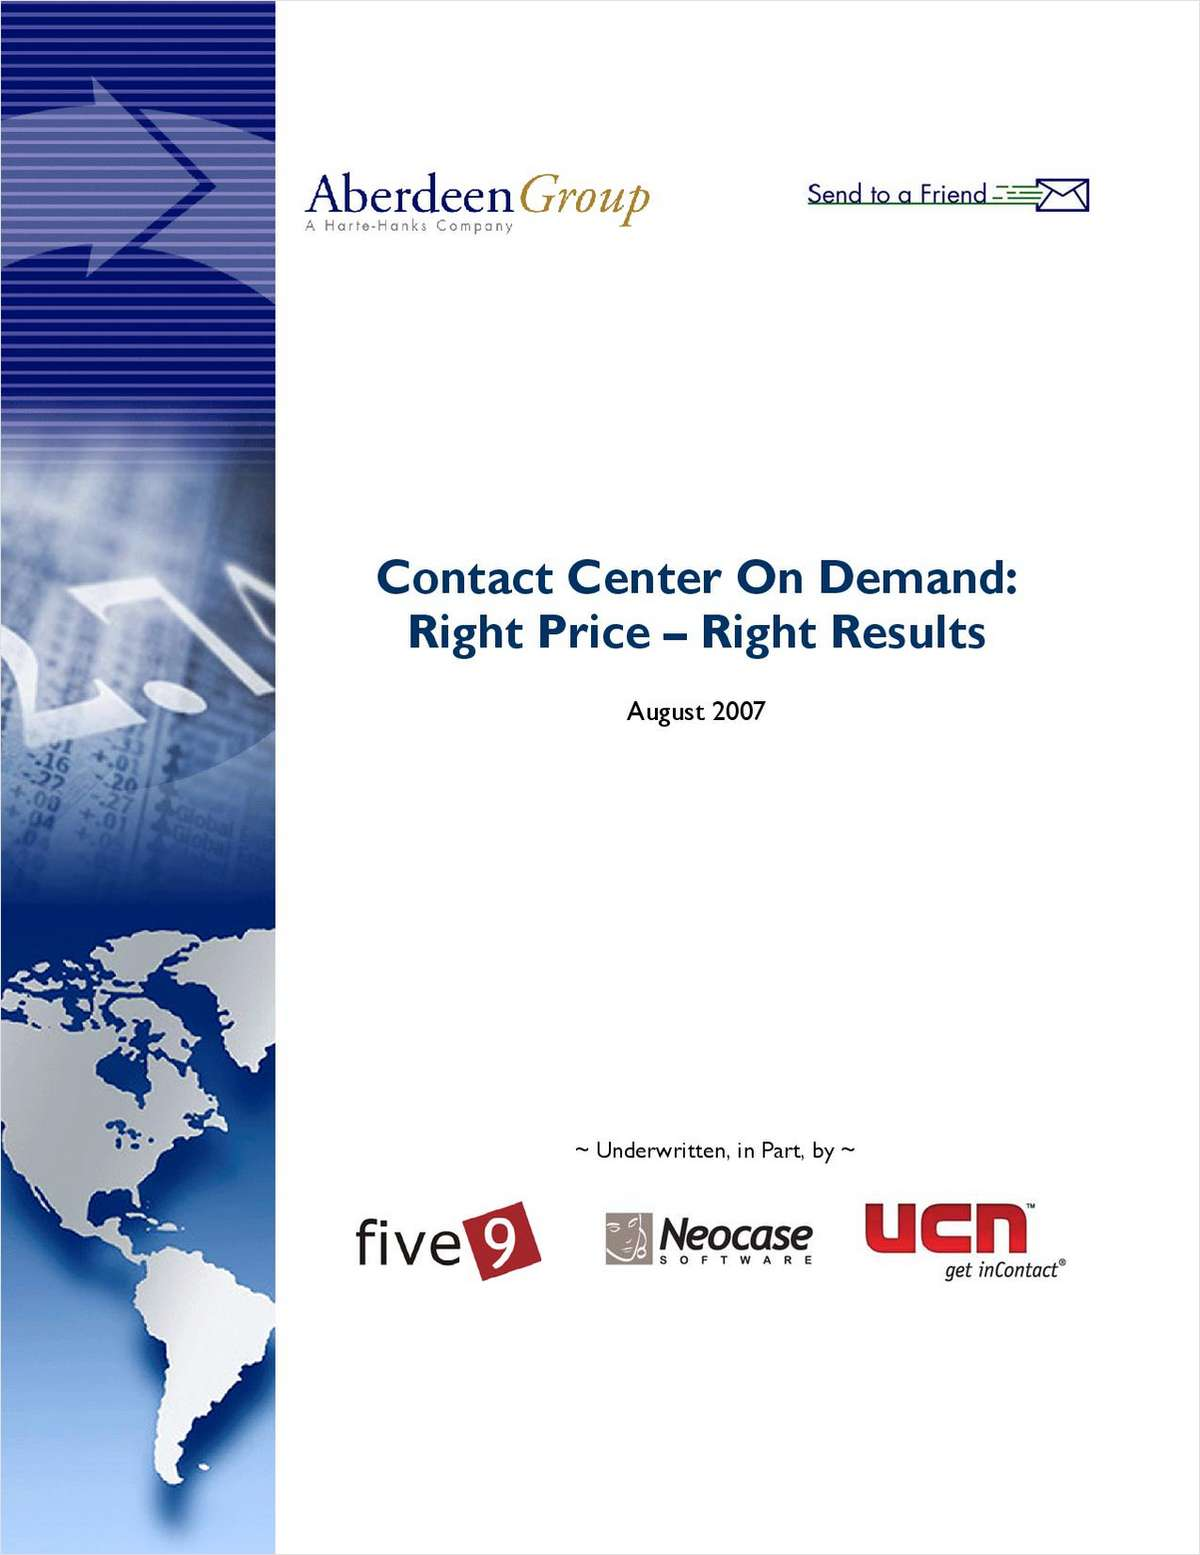 Contact Center On Demand: Right Price – Right Results